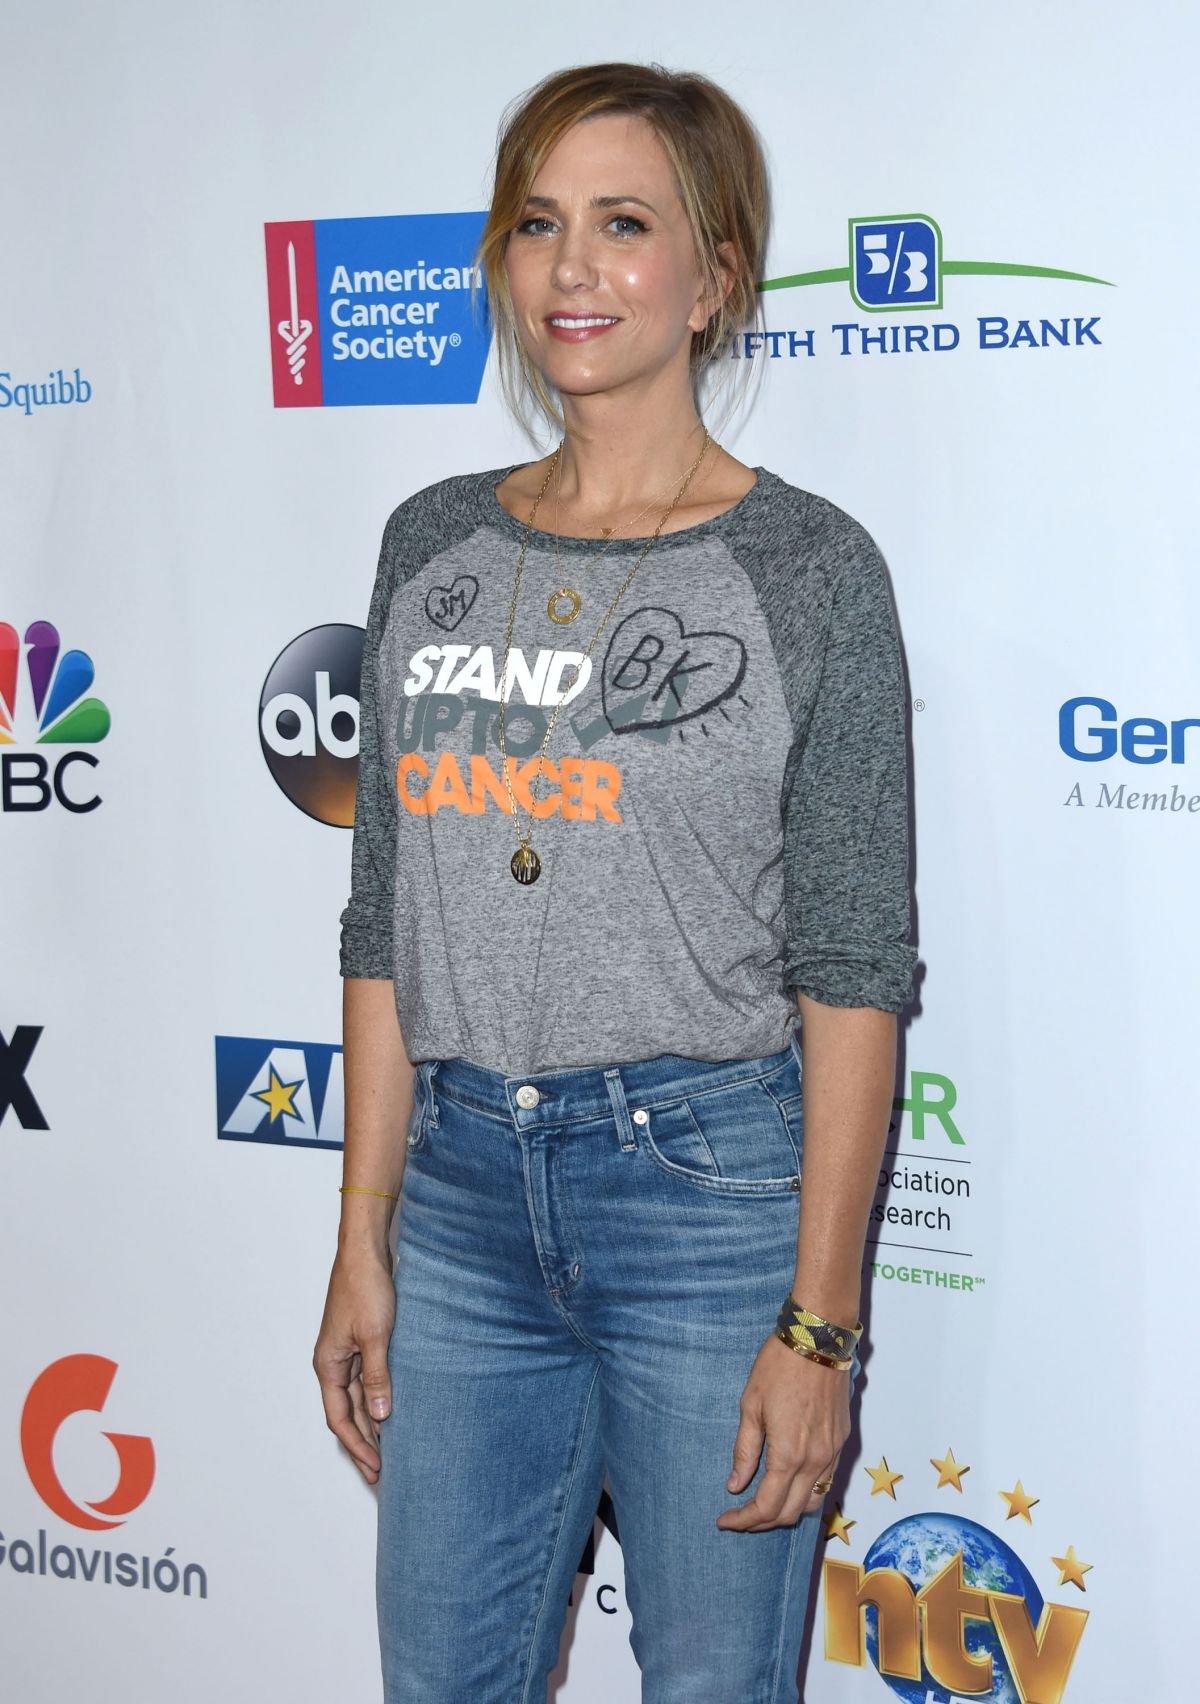 KRISTEN WIIG at 5th Biennial Stand Up To Cancer in Los Angeles 09/09/2016